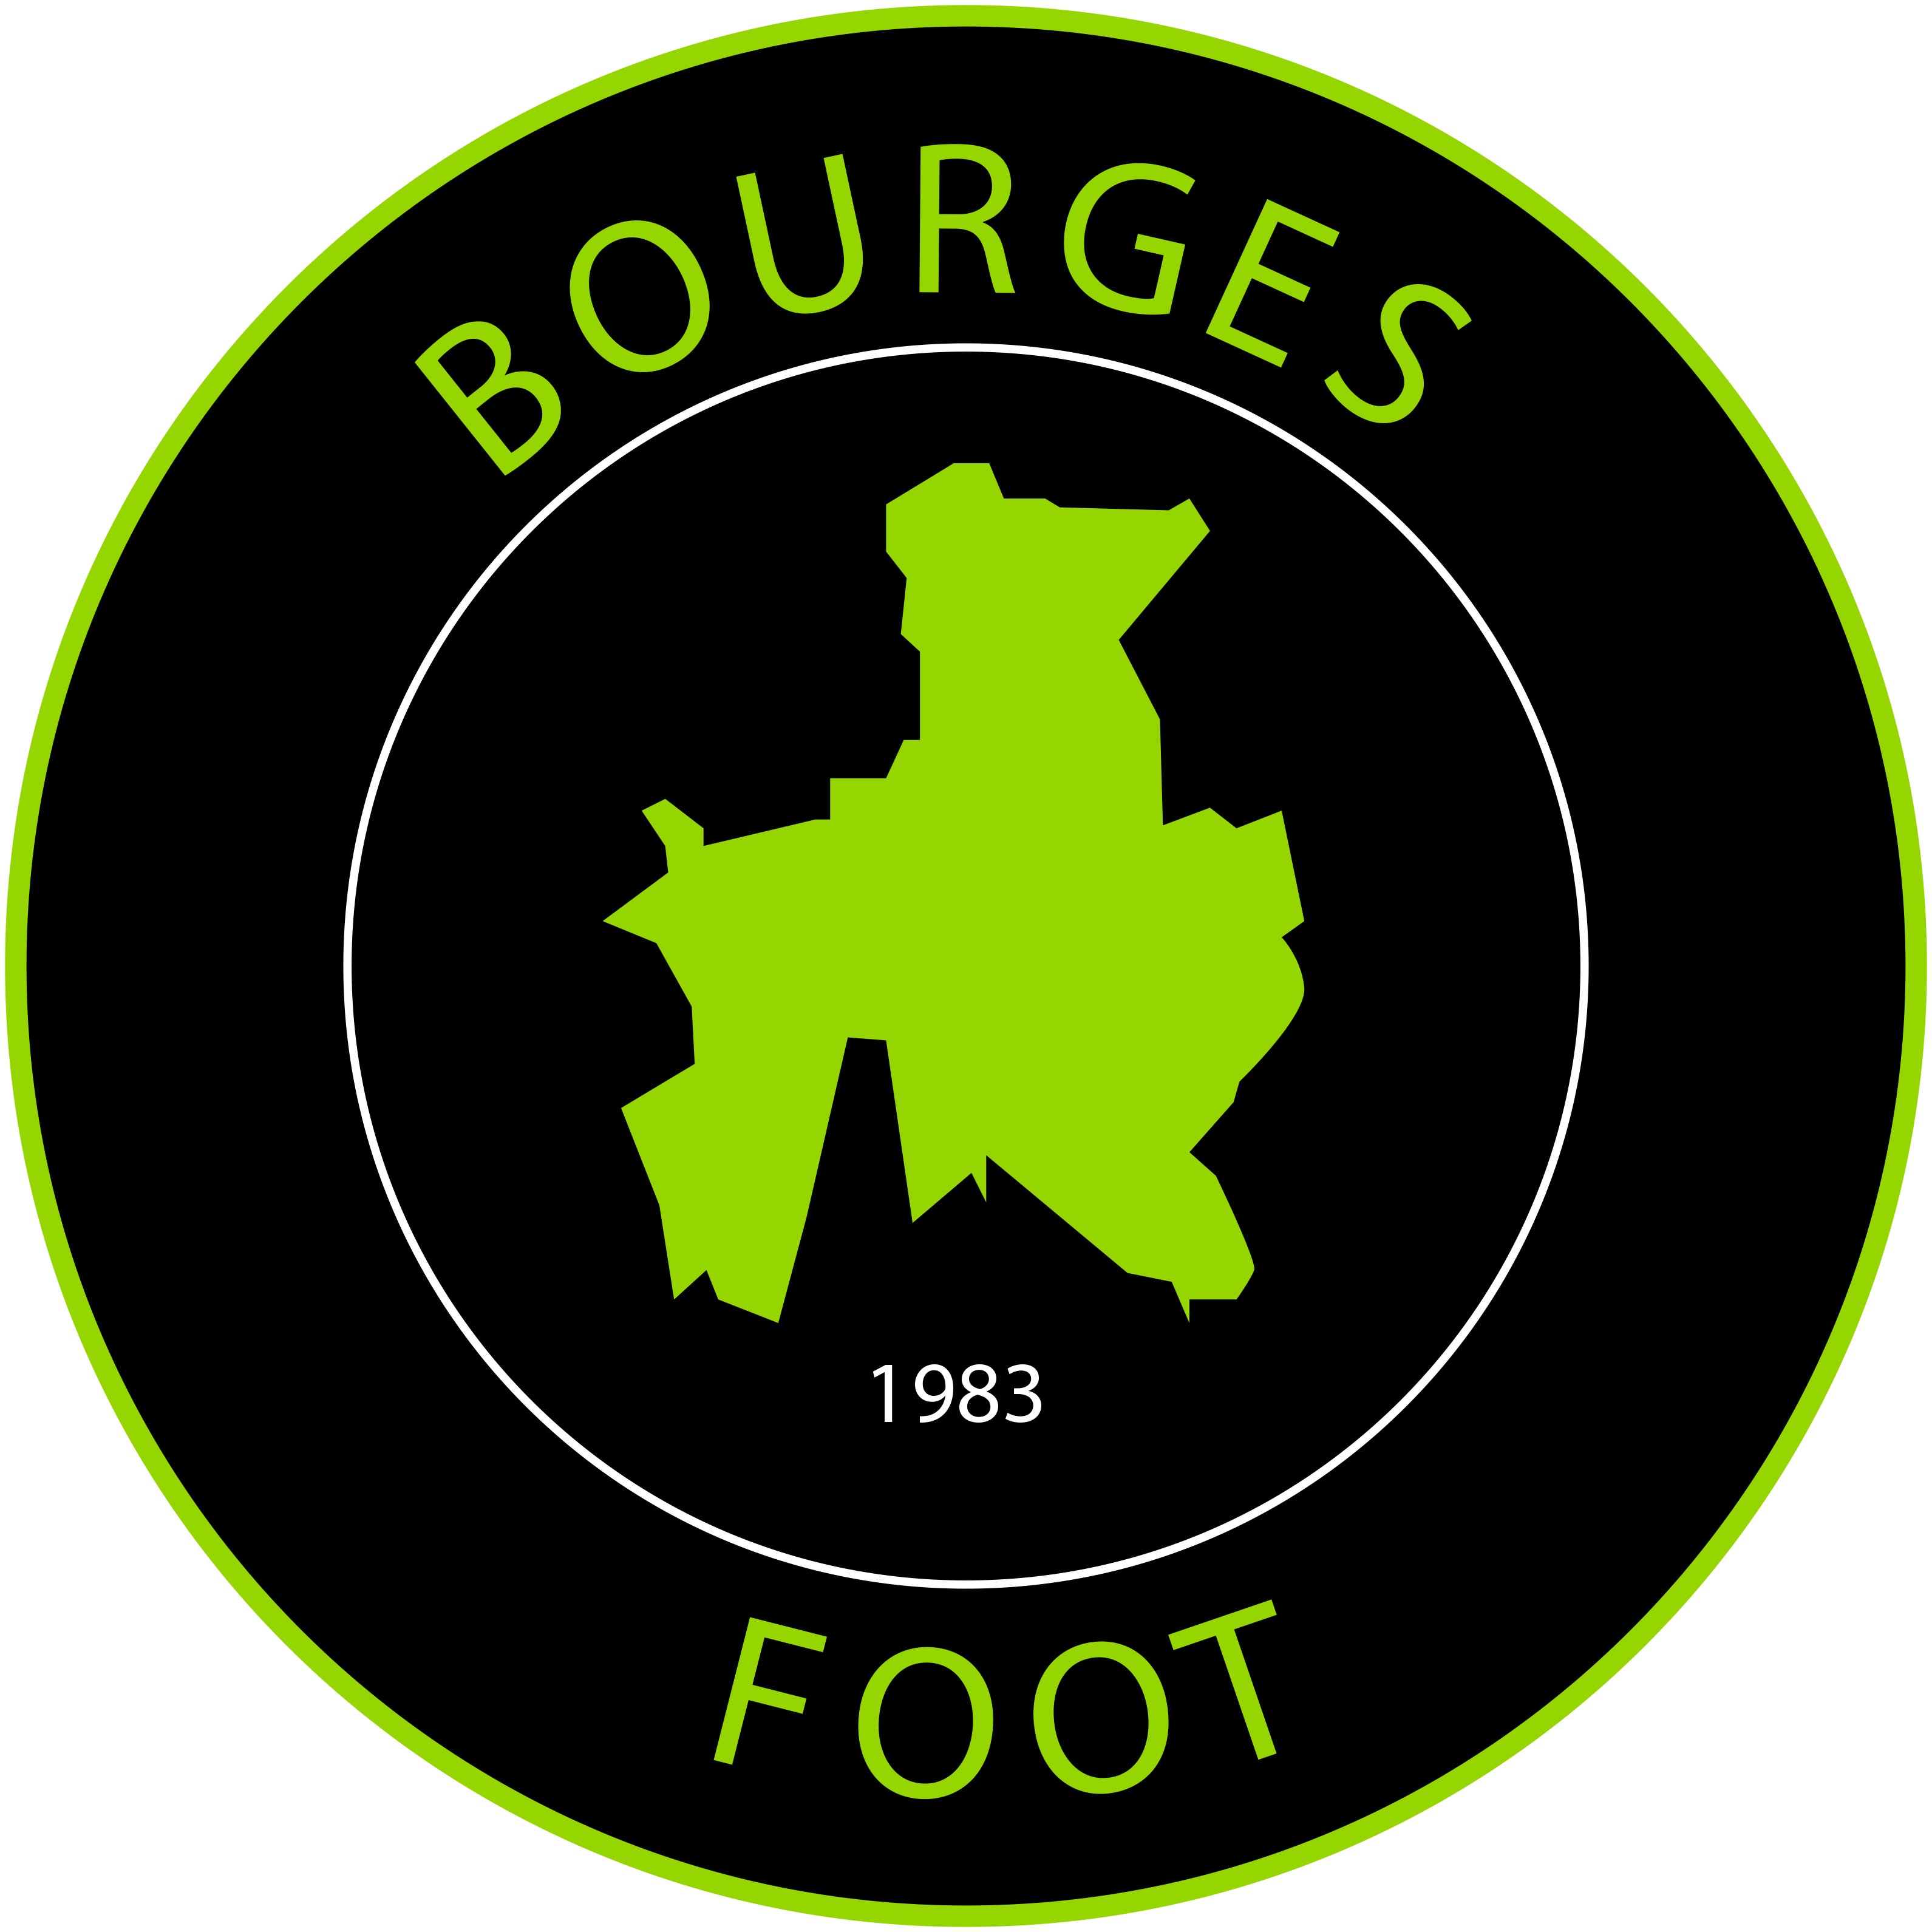 Association - Bourges Foot